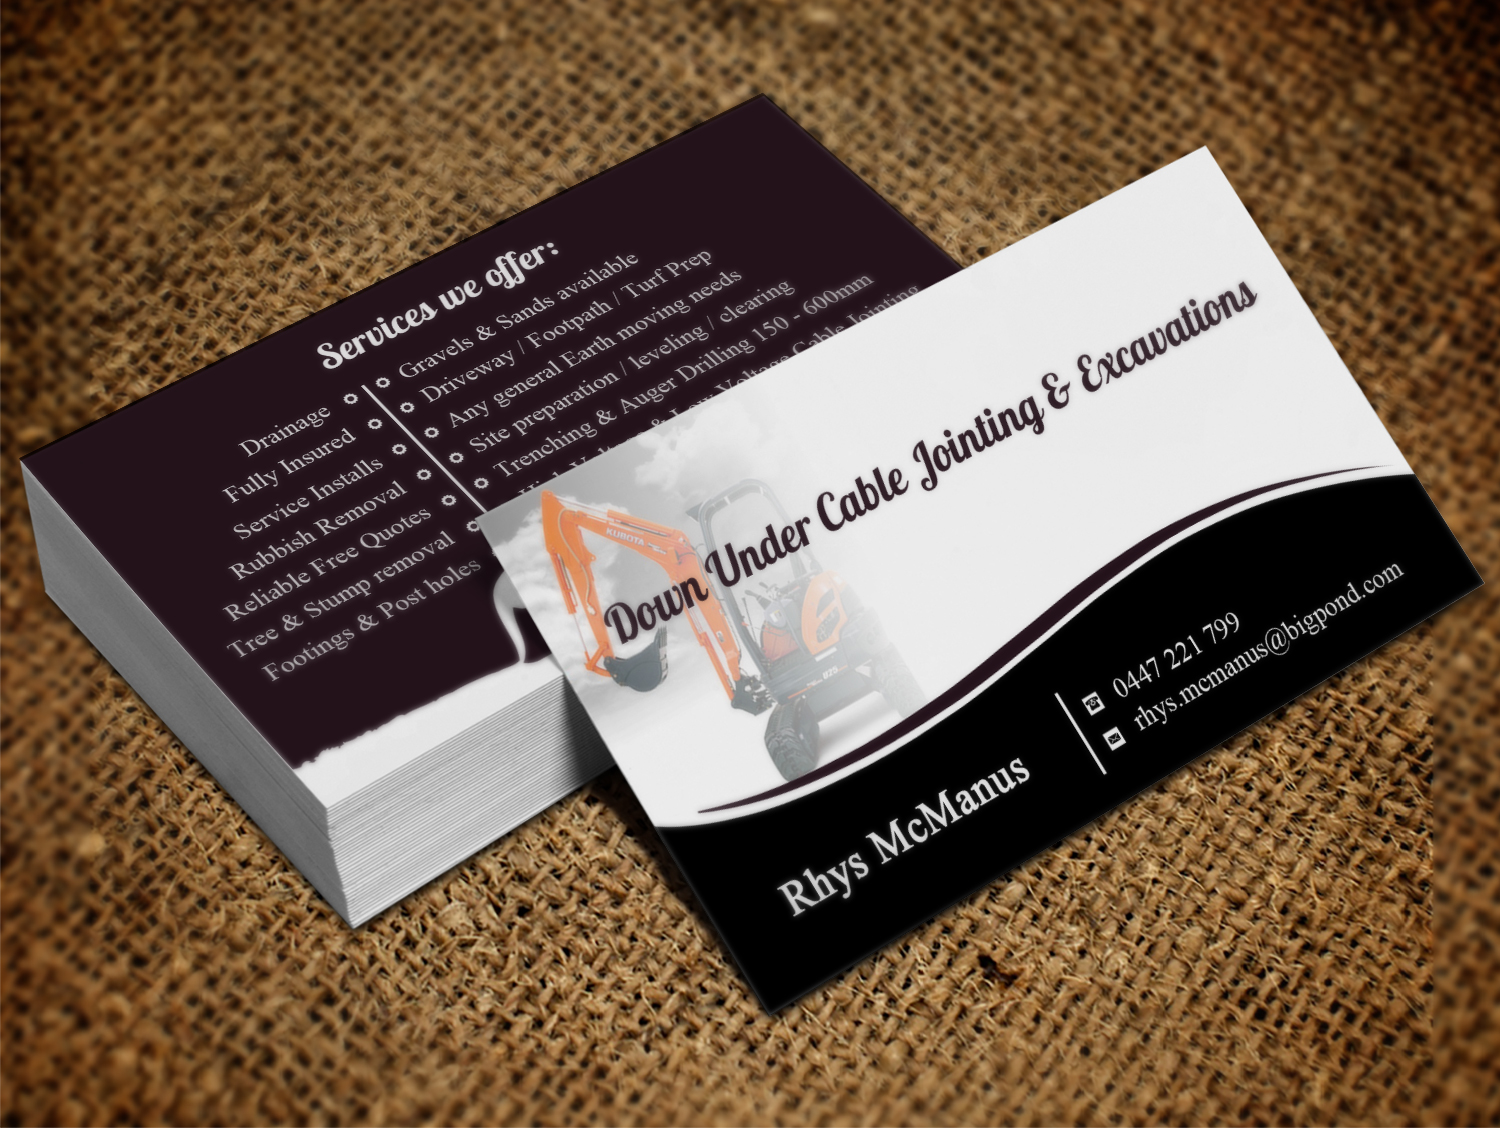 Masculine elegant construction business card design for a company business card design by creation lanka for this project design 10690905 colourmoves Choice Image